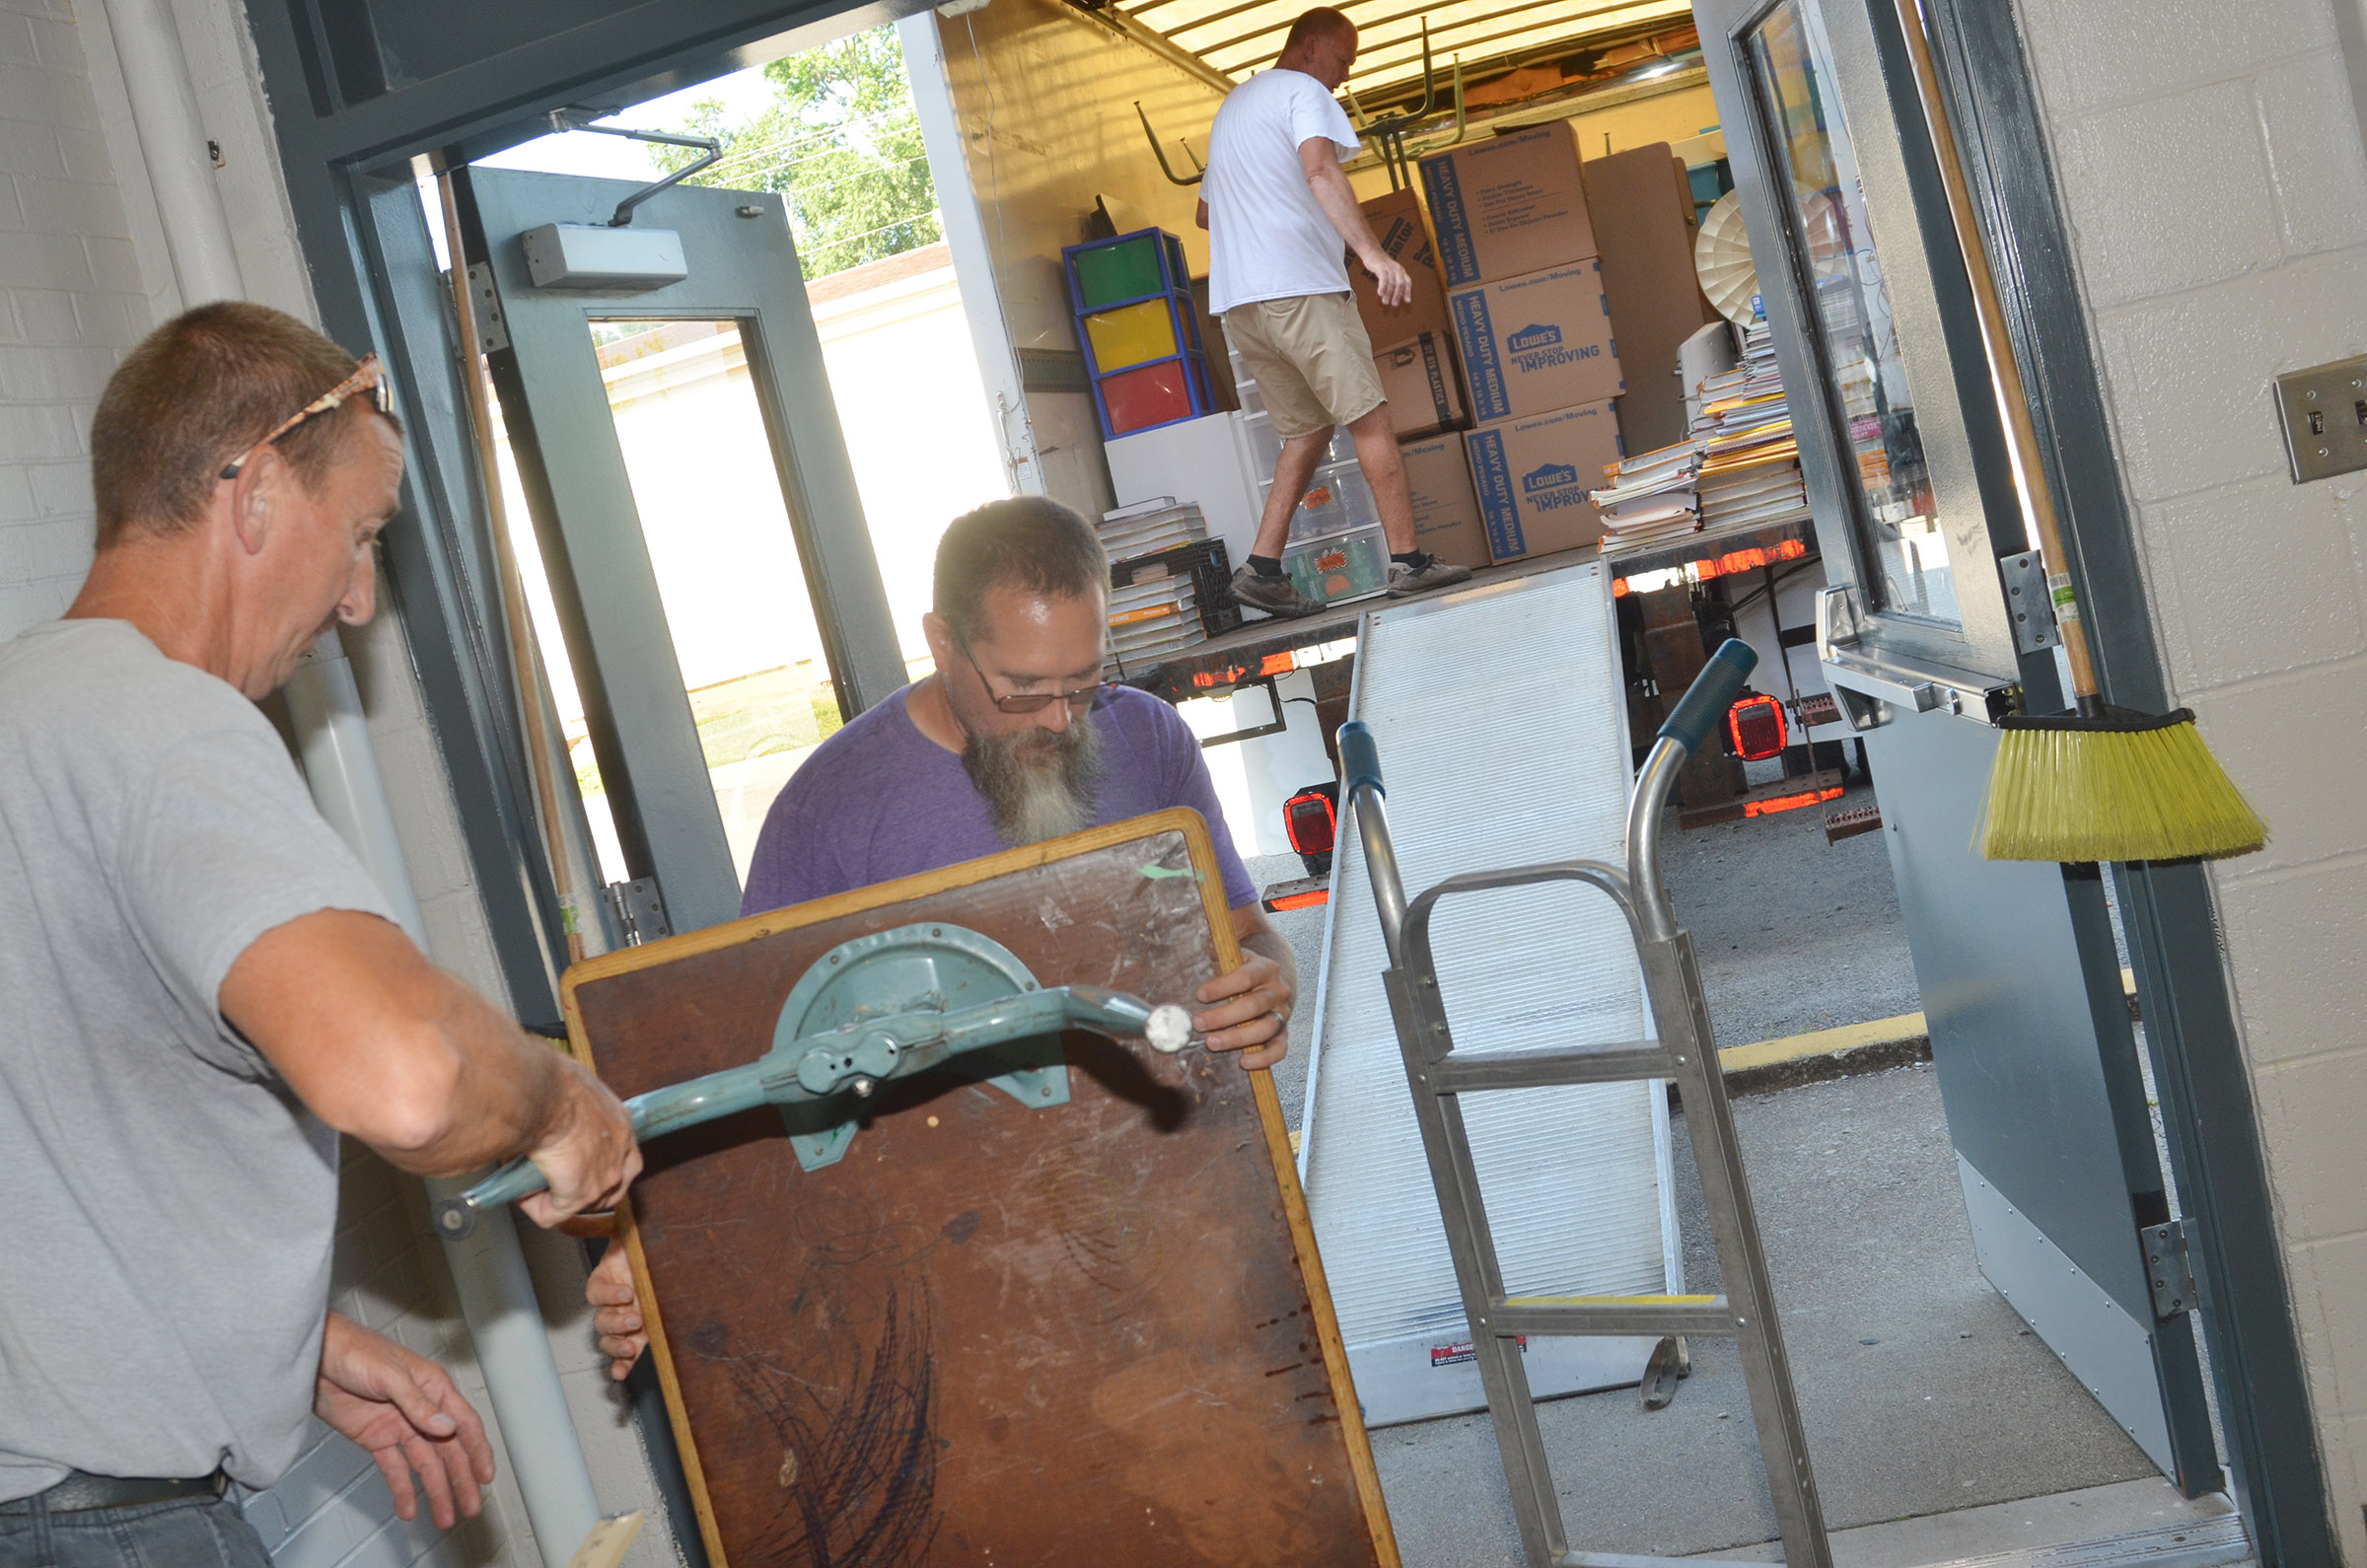 Carl Lee, at left, and Randy Bricken Jr., who work in maintenance, help teachers move their classrooms from the CMS campus to CES.